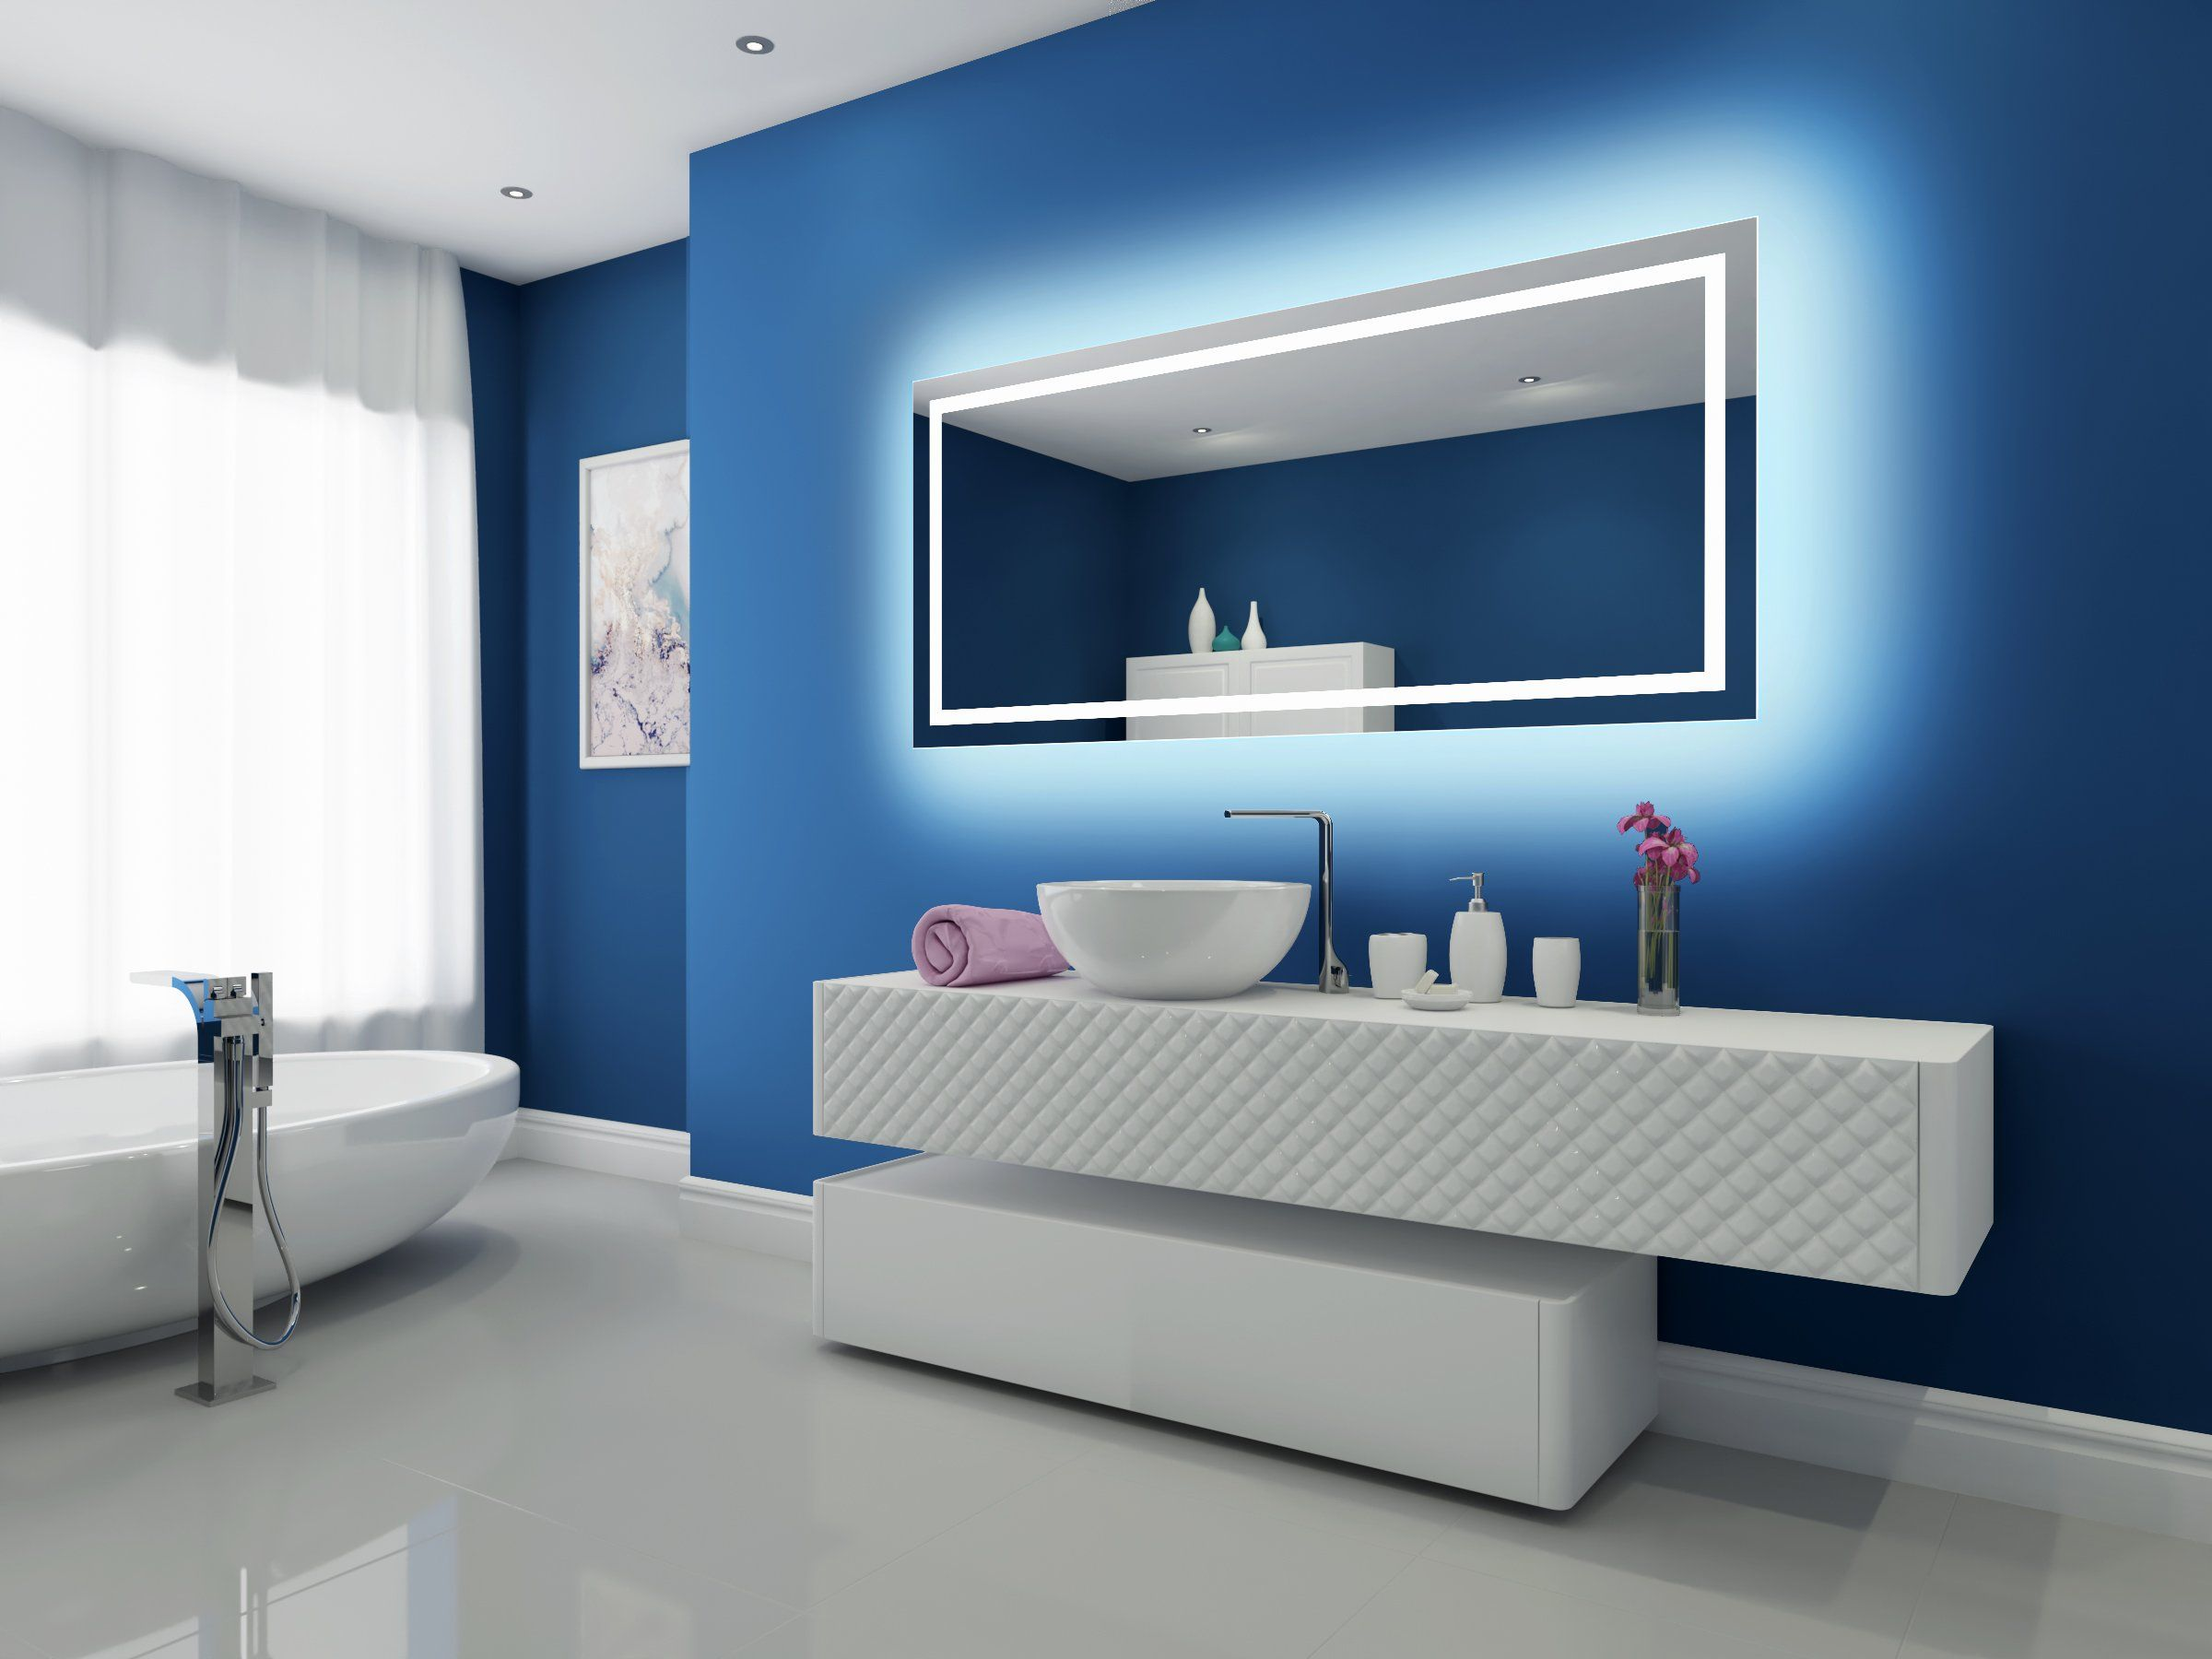 Dimmable Backlit Mirror Harmony 70 X 32 | Backlit mirror and Master ...